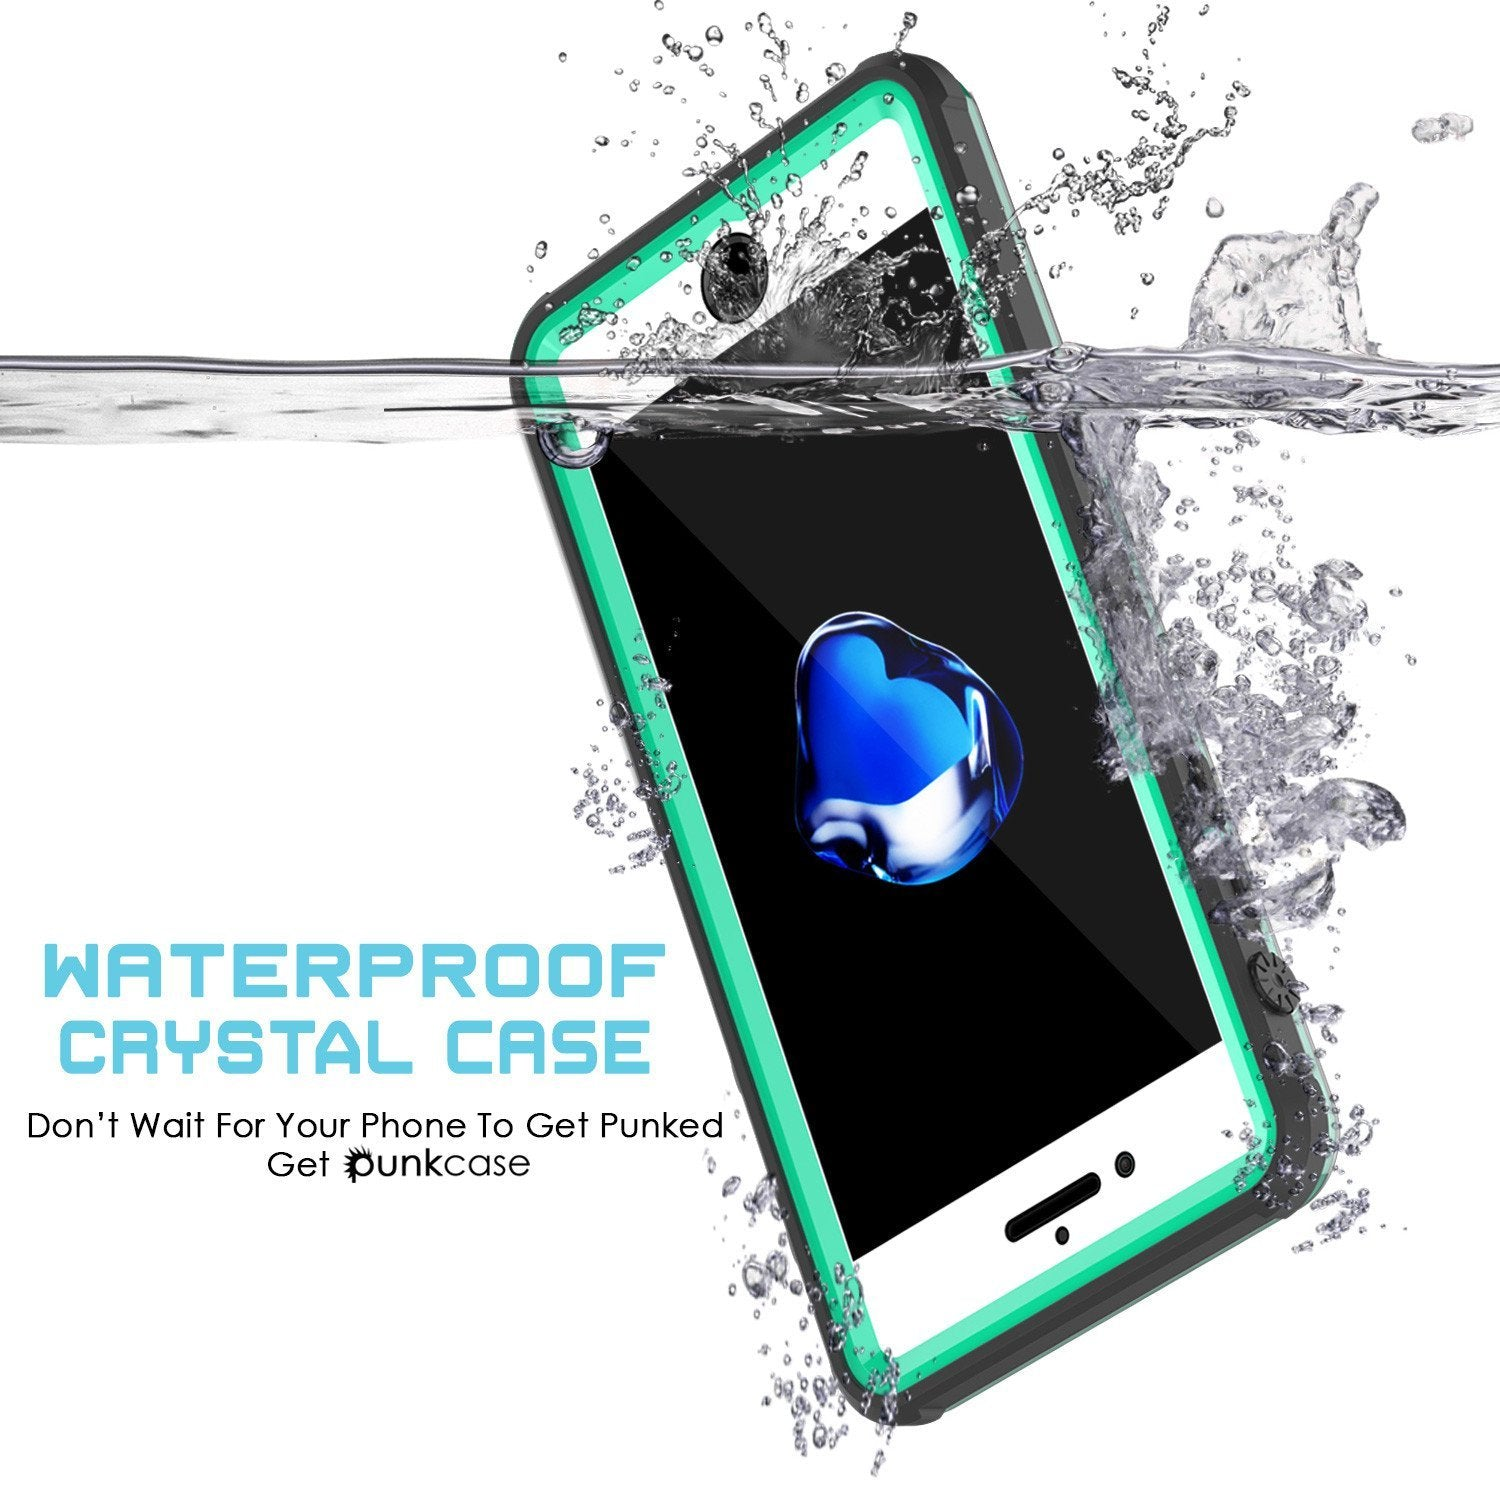 iPhone 8+ Plus Waterproof Case, PUNKcase CRYSTAL Teal W/ Attached Screen Protector  | Warranty